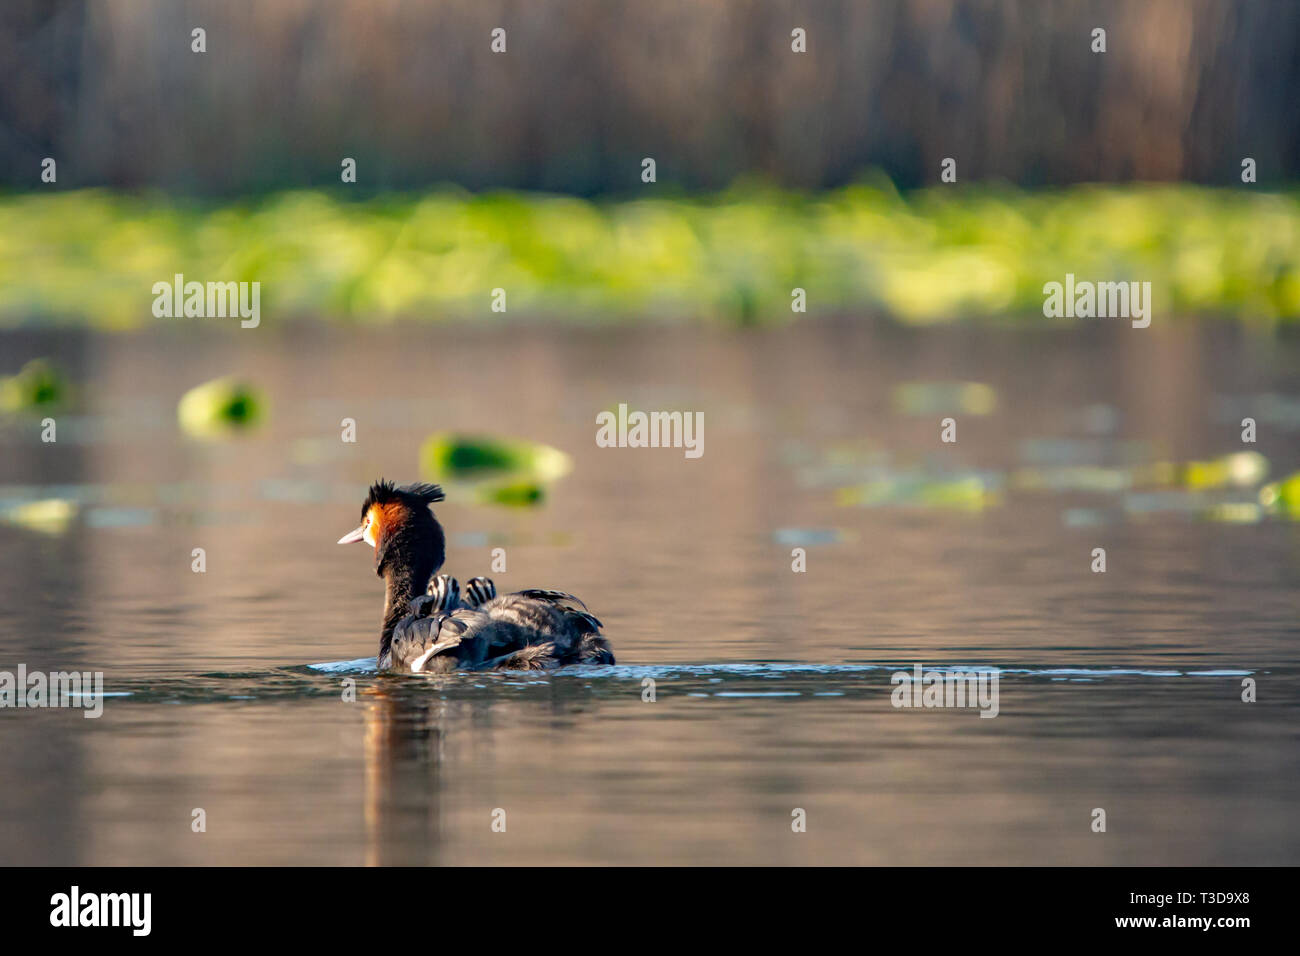 Colour wildlife portrait photograph of adult Great crested grebe (Podiceps cristatus) with two chicks on back whilst swimming on water. Taken on Hatch - Stock Image